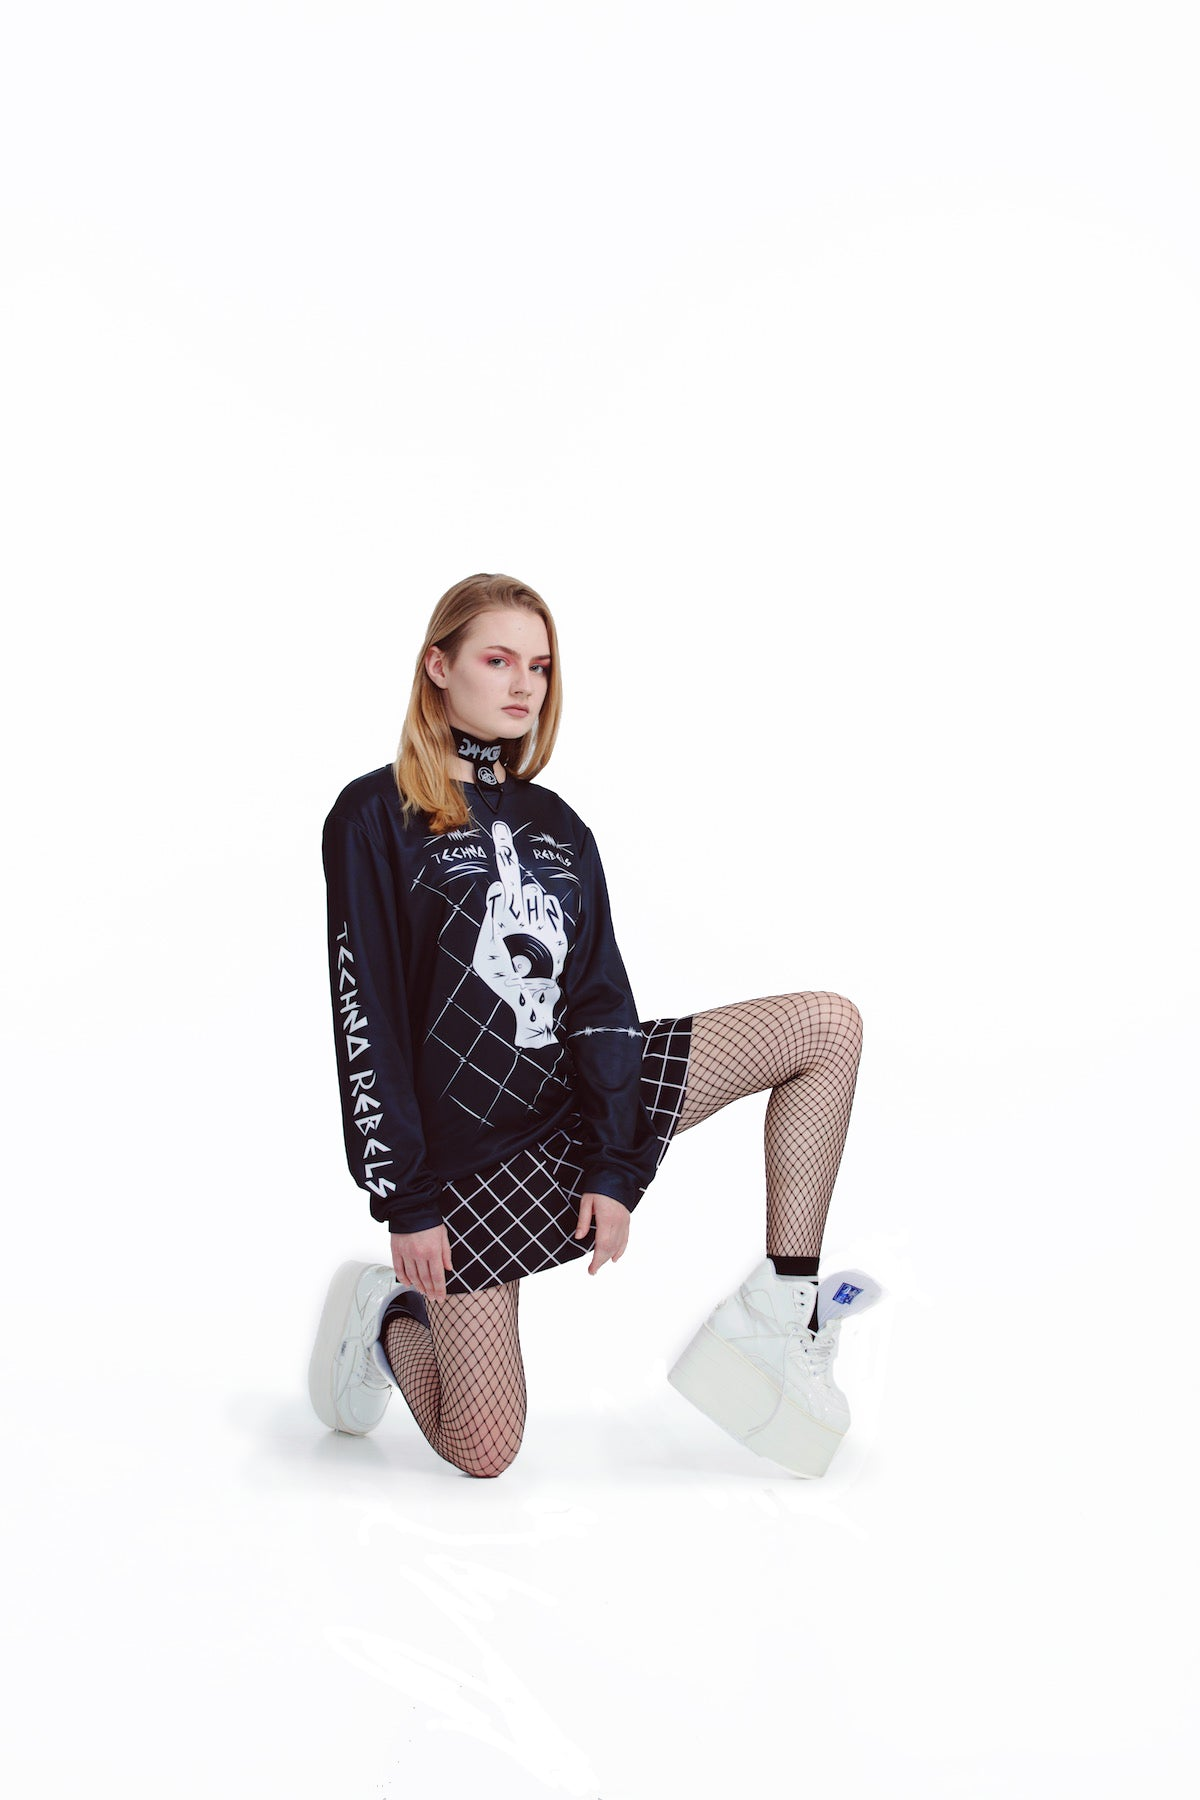 Techno Rebels Sweatshirts